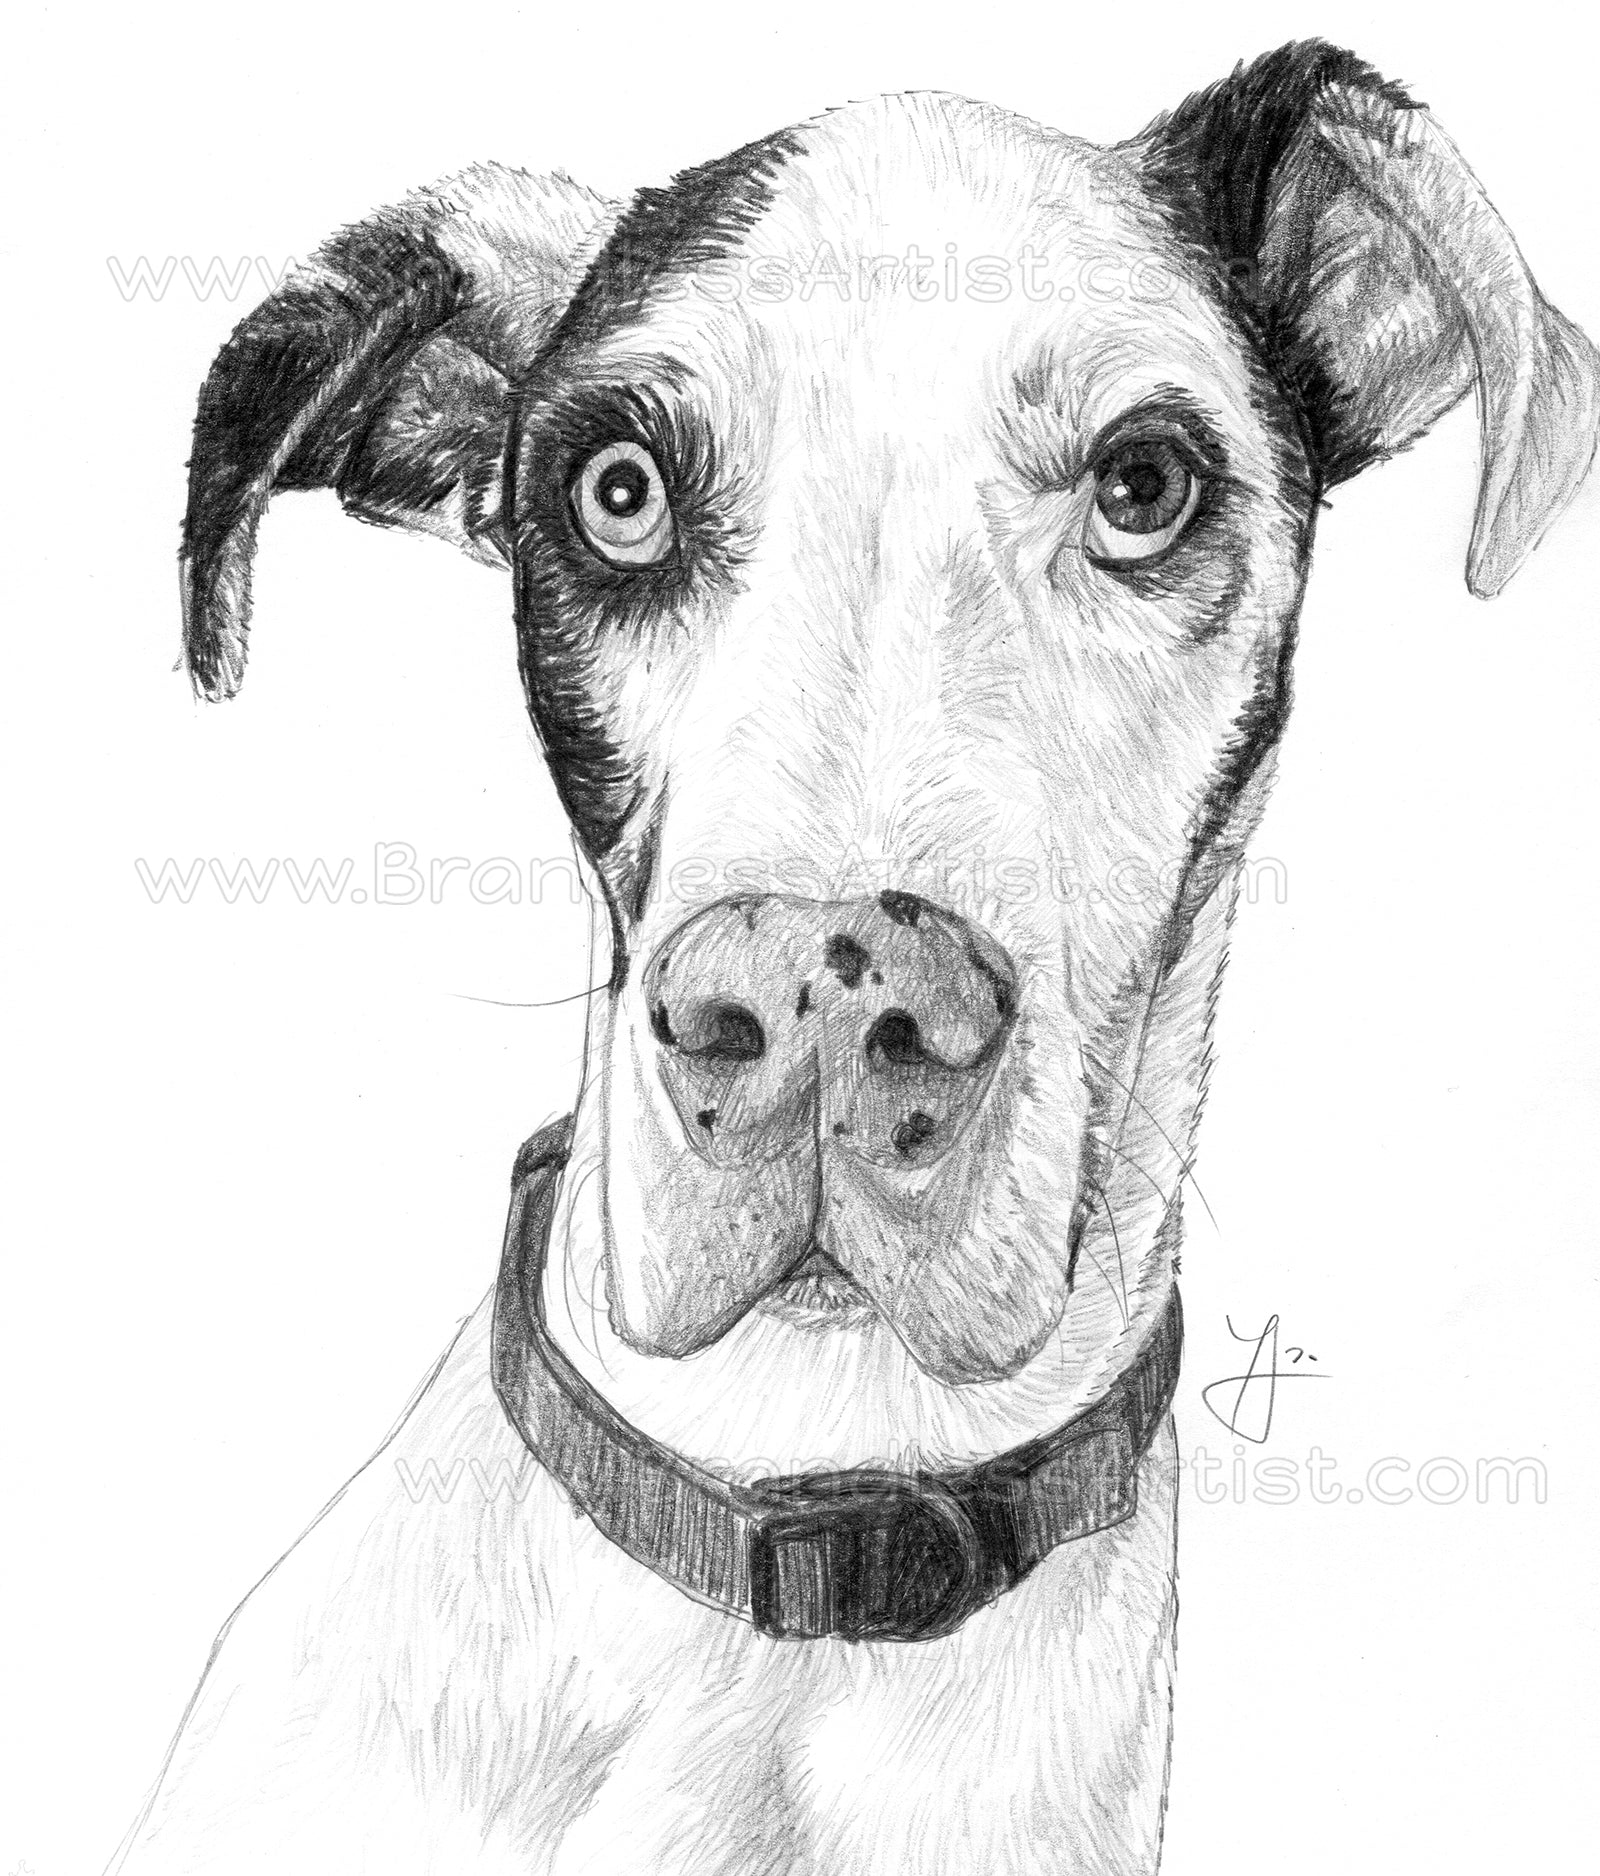 Dog Sketch from Photo - Pet Portrait Custom Pencil Drawing | Brandless Artist